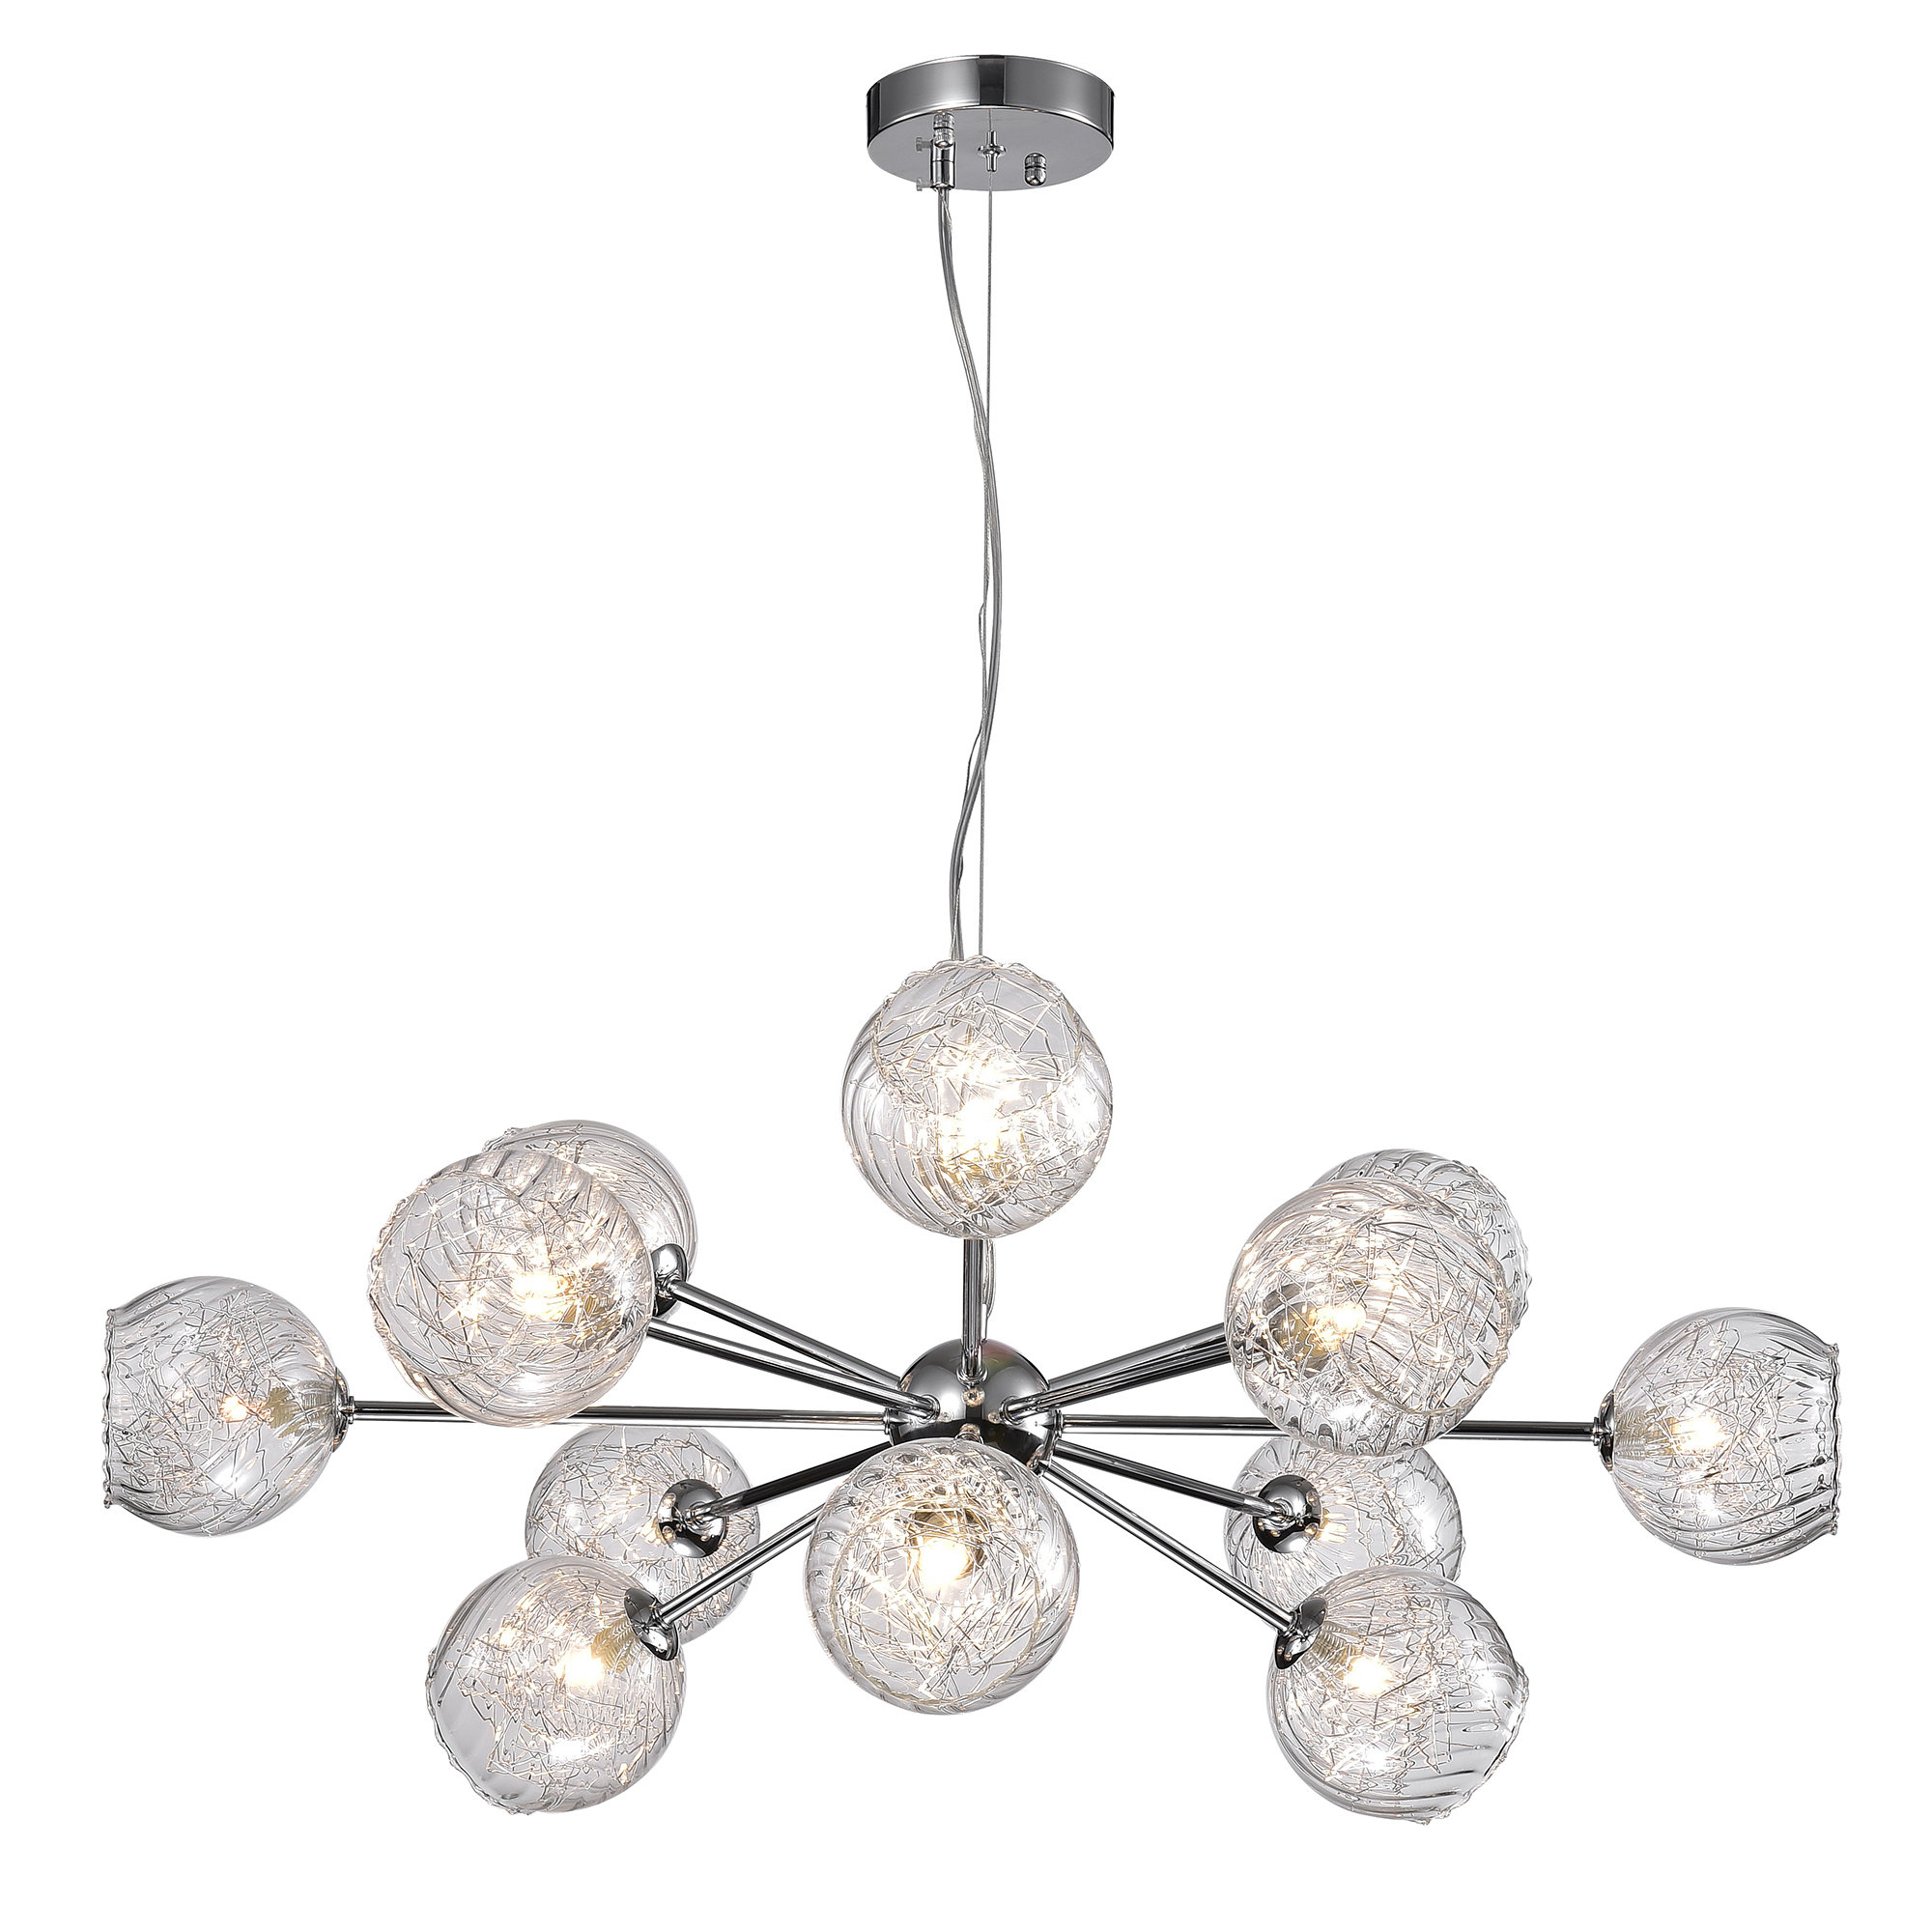 Earleville 12-Light Sputnik Chandelier for Asher 12-Light Sputnik Chandeliers (Image 15 of 30)